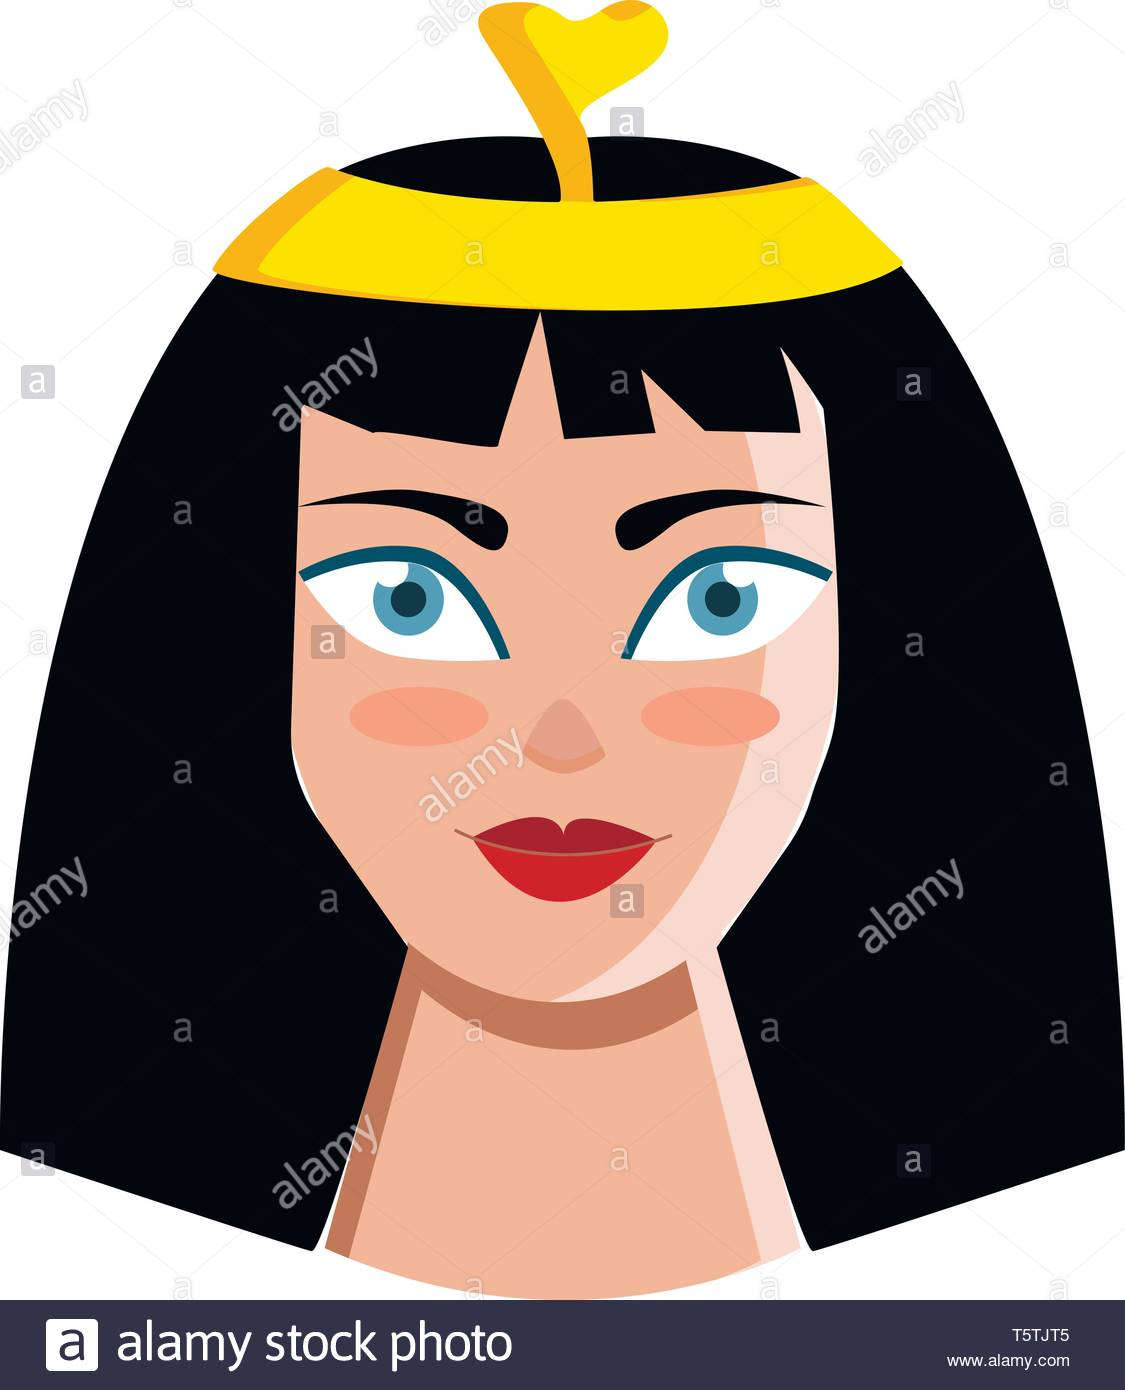 Clipart of queen Cleopatra vector or color illustration Stock Vector.